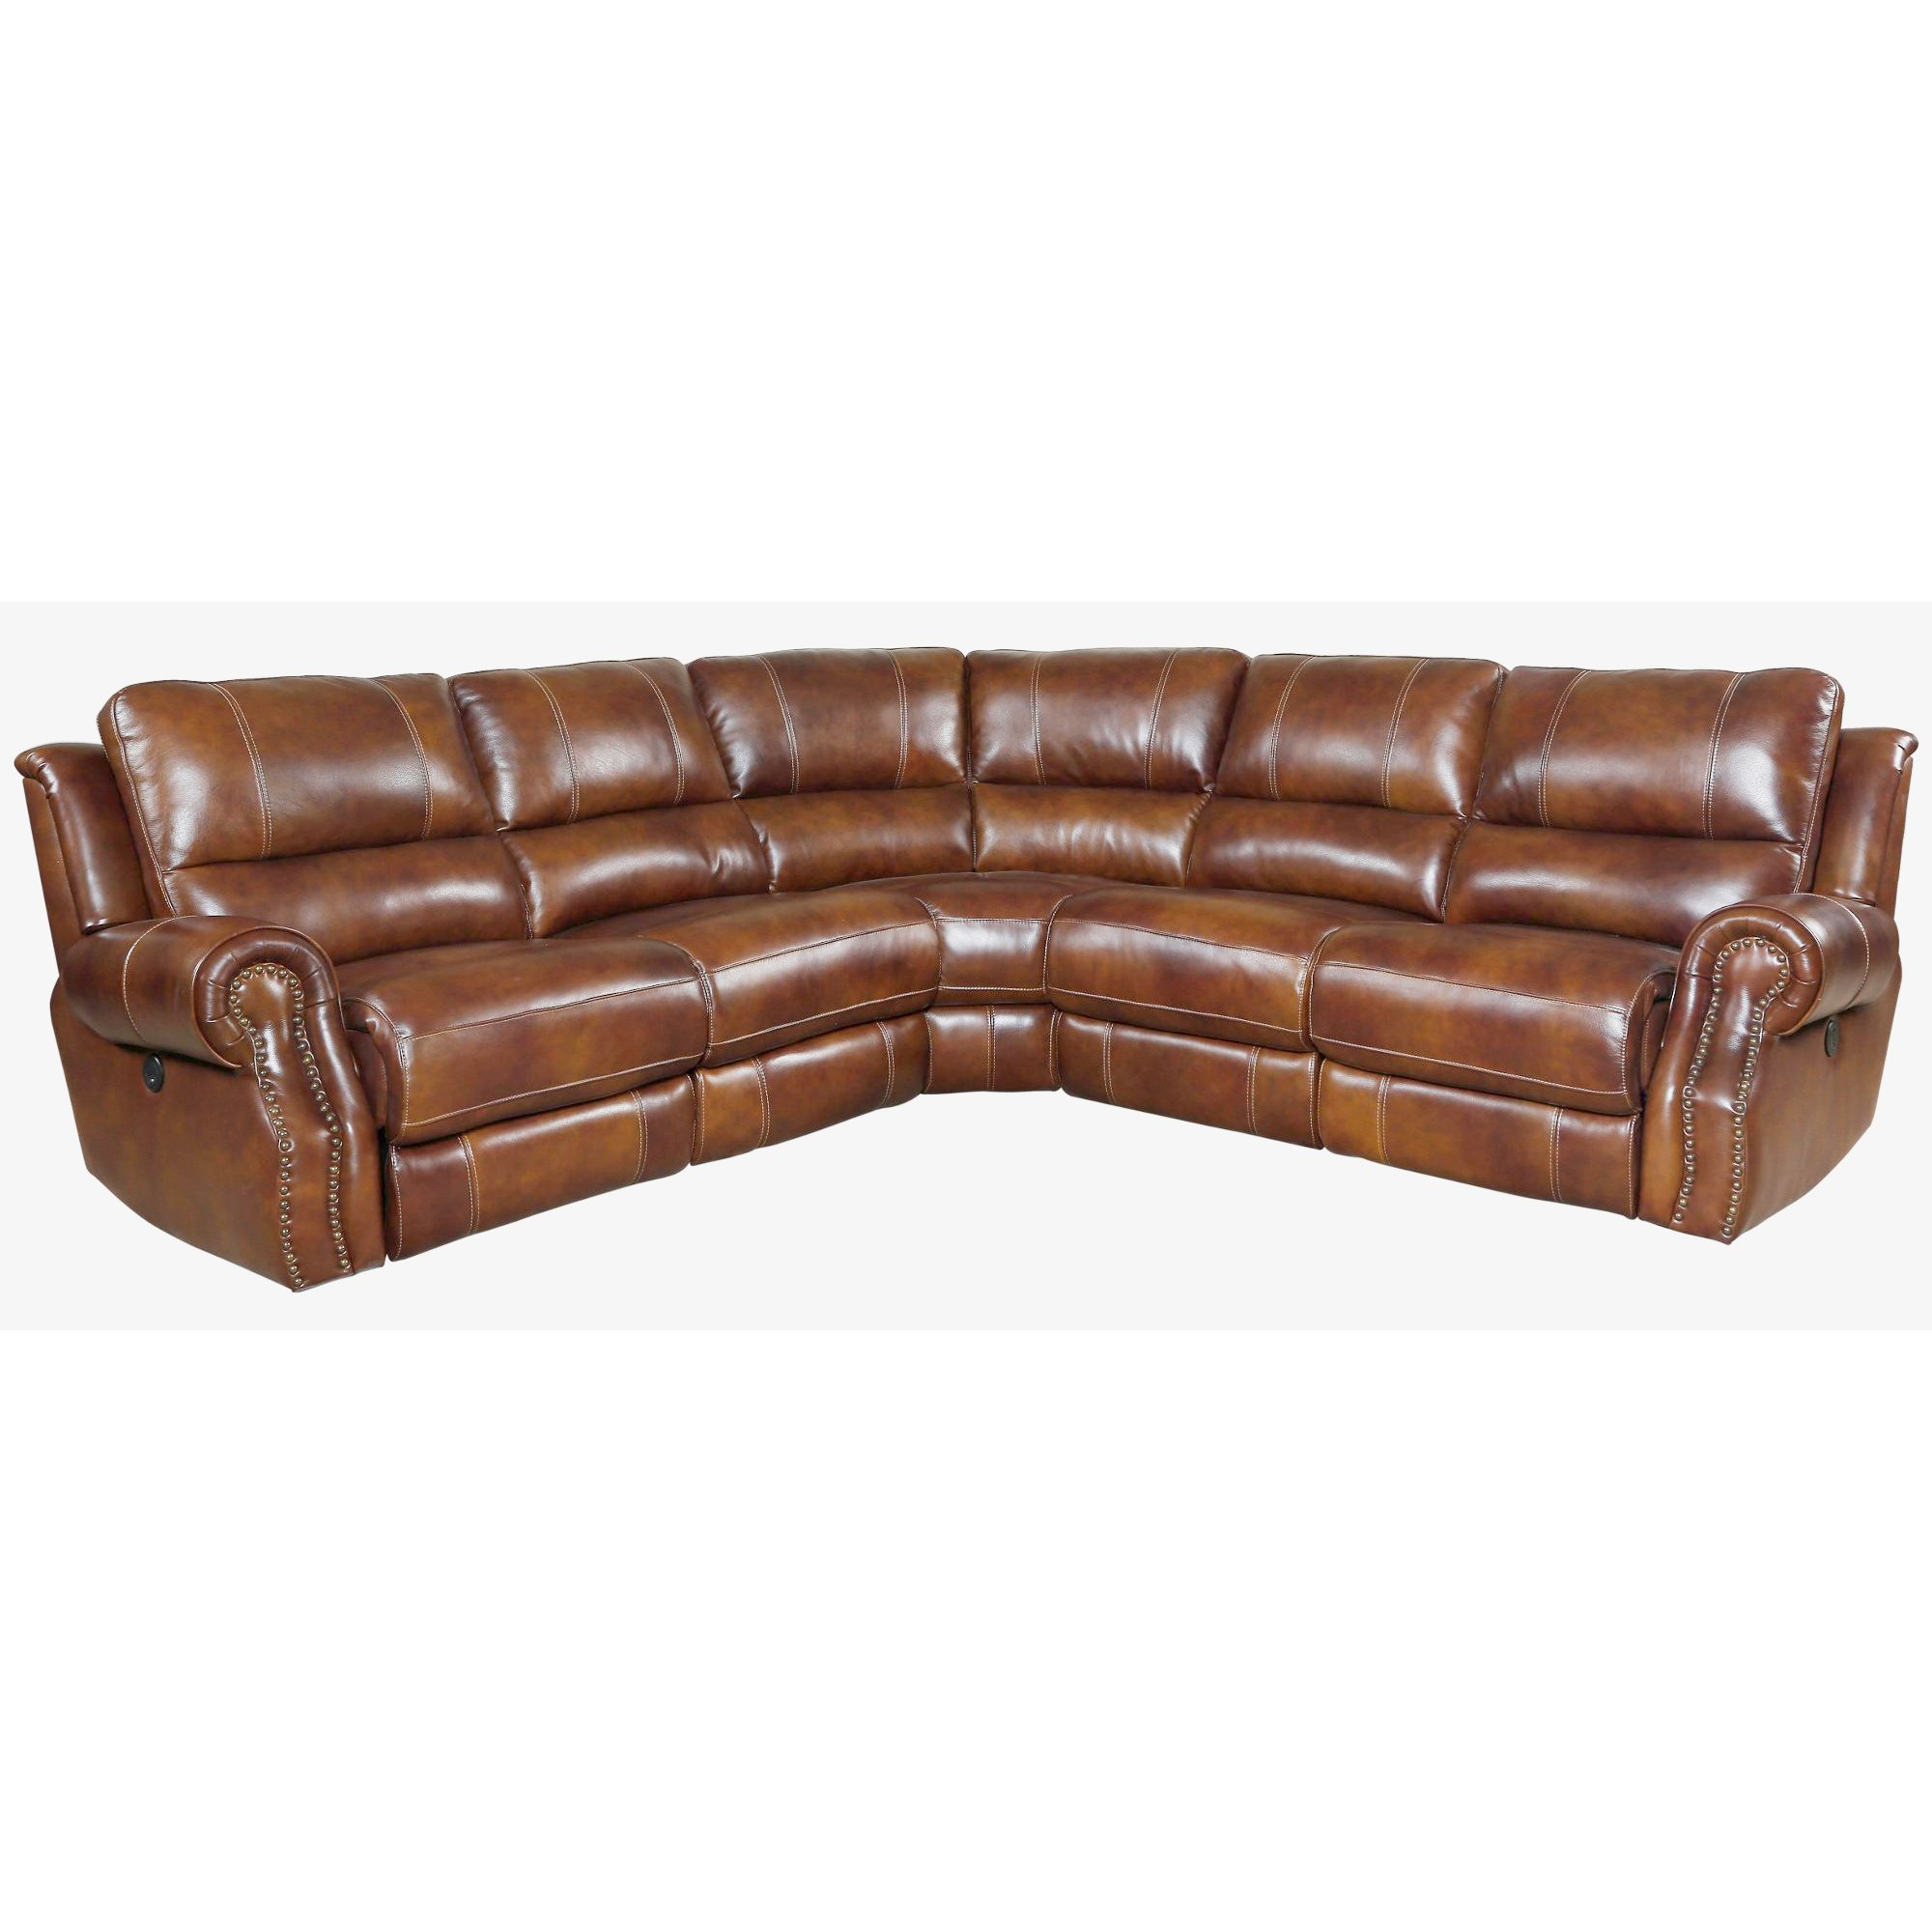 Leather Sectional Sofa Recliner Chestnut Brown 5 Piece Power Reclining Sectional Sofa Nailhead